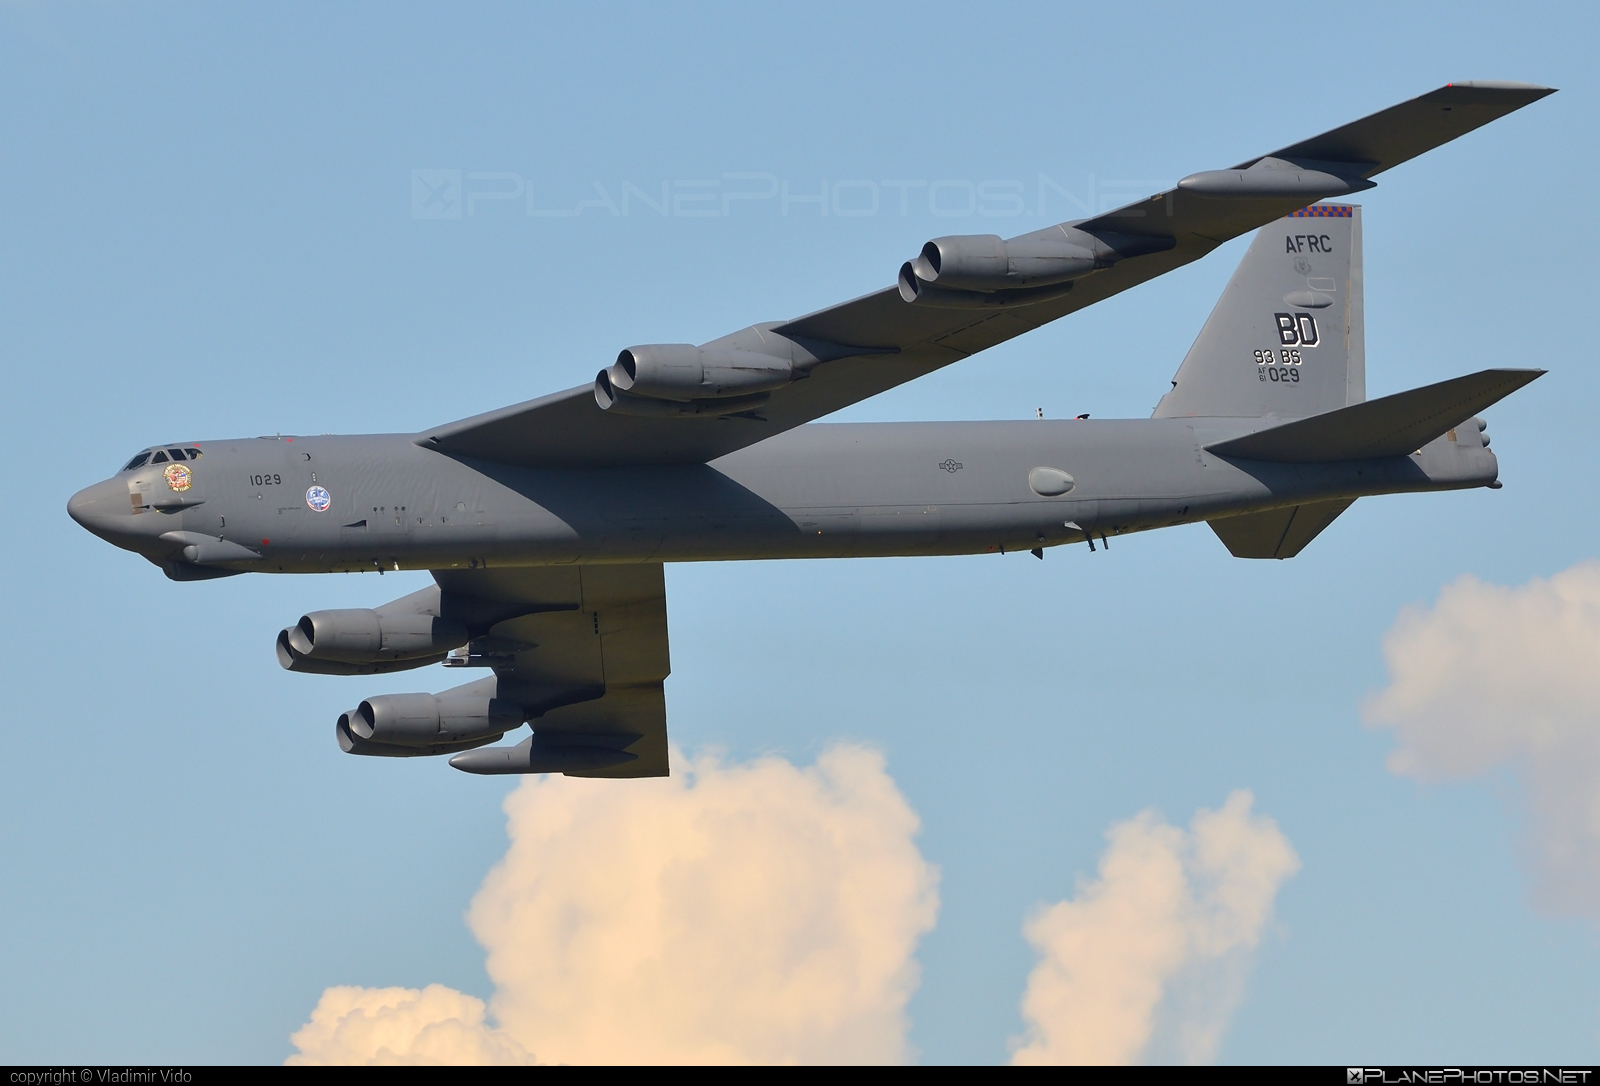 Boeing B-52H Stratofortress - 61-0029 operated by US Air Force (USAF) #b52 #b52h #boeing #boeingb52 #natodays #natodays2017 #stratofortress #usaf #usairforce